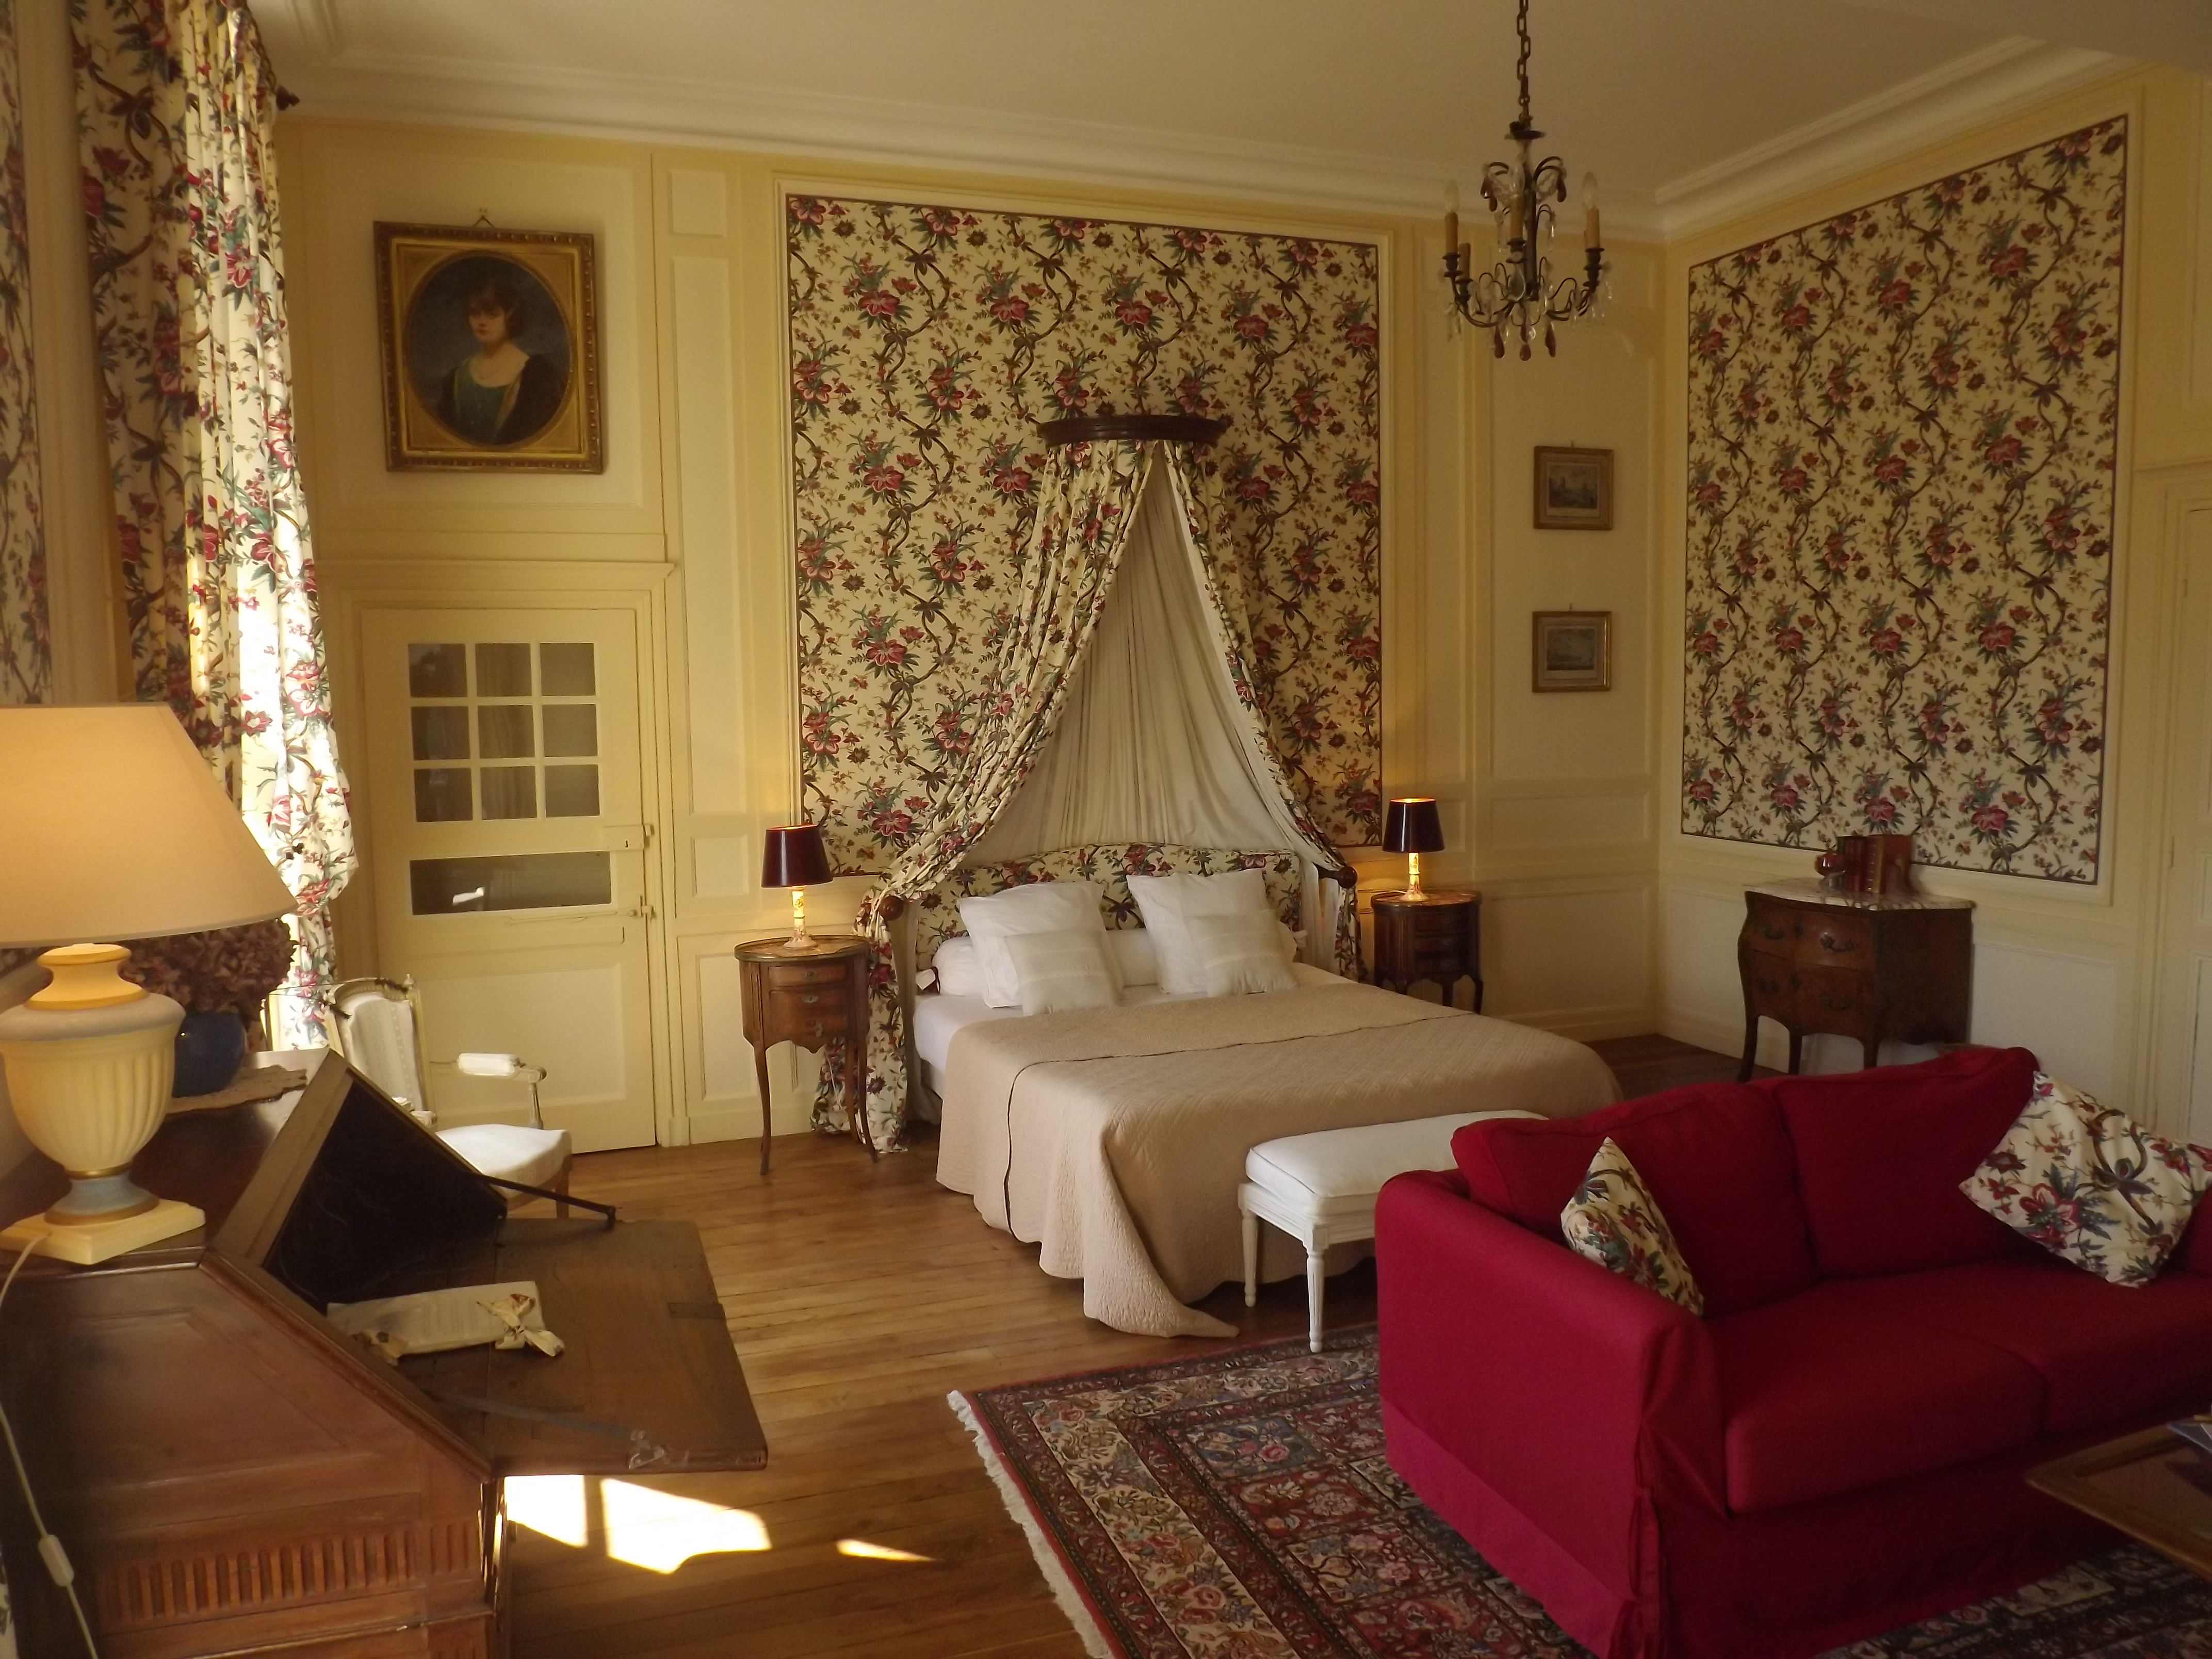 Chateau-du-Val-chambre-Chateaubriand